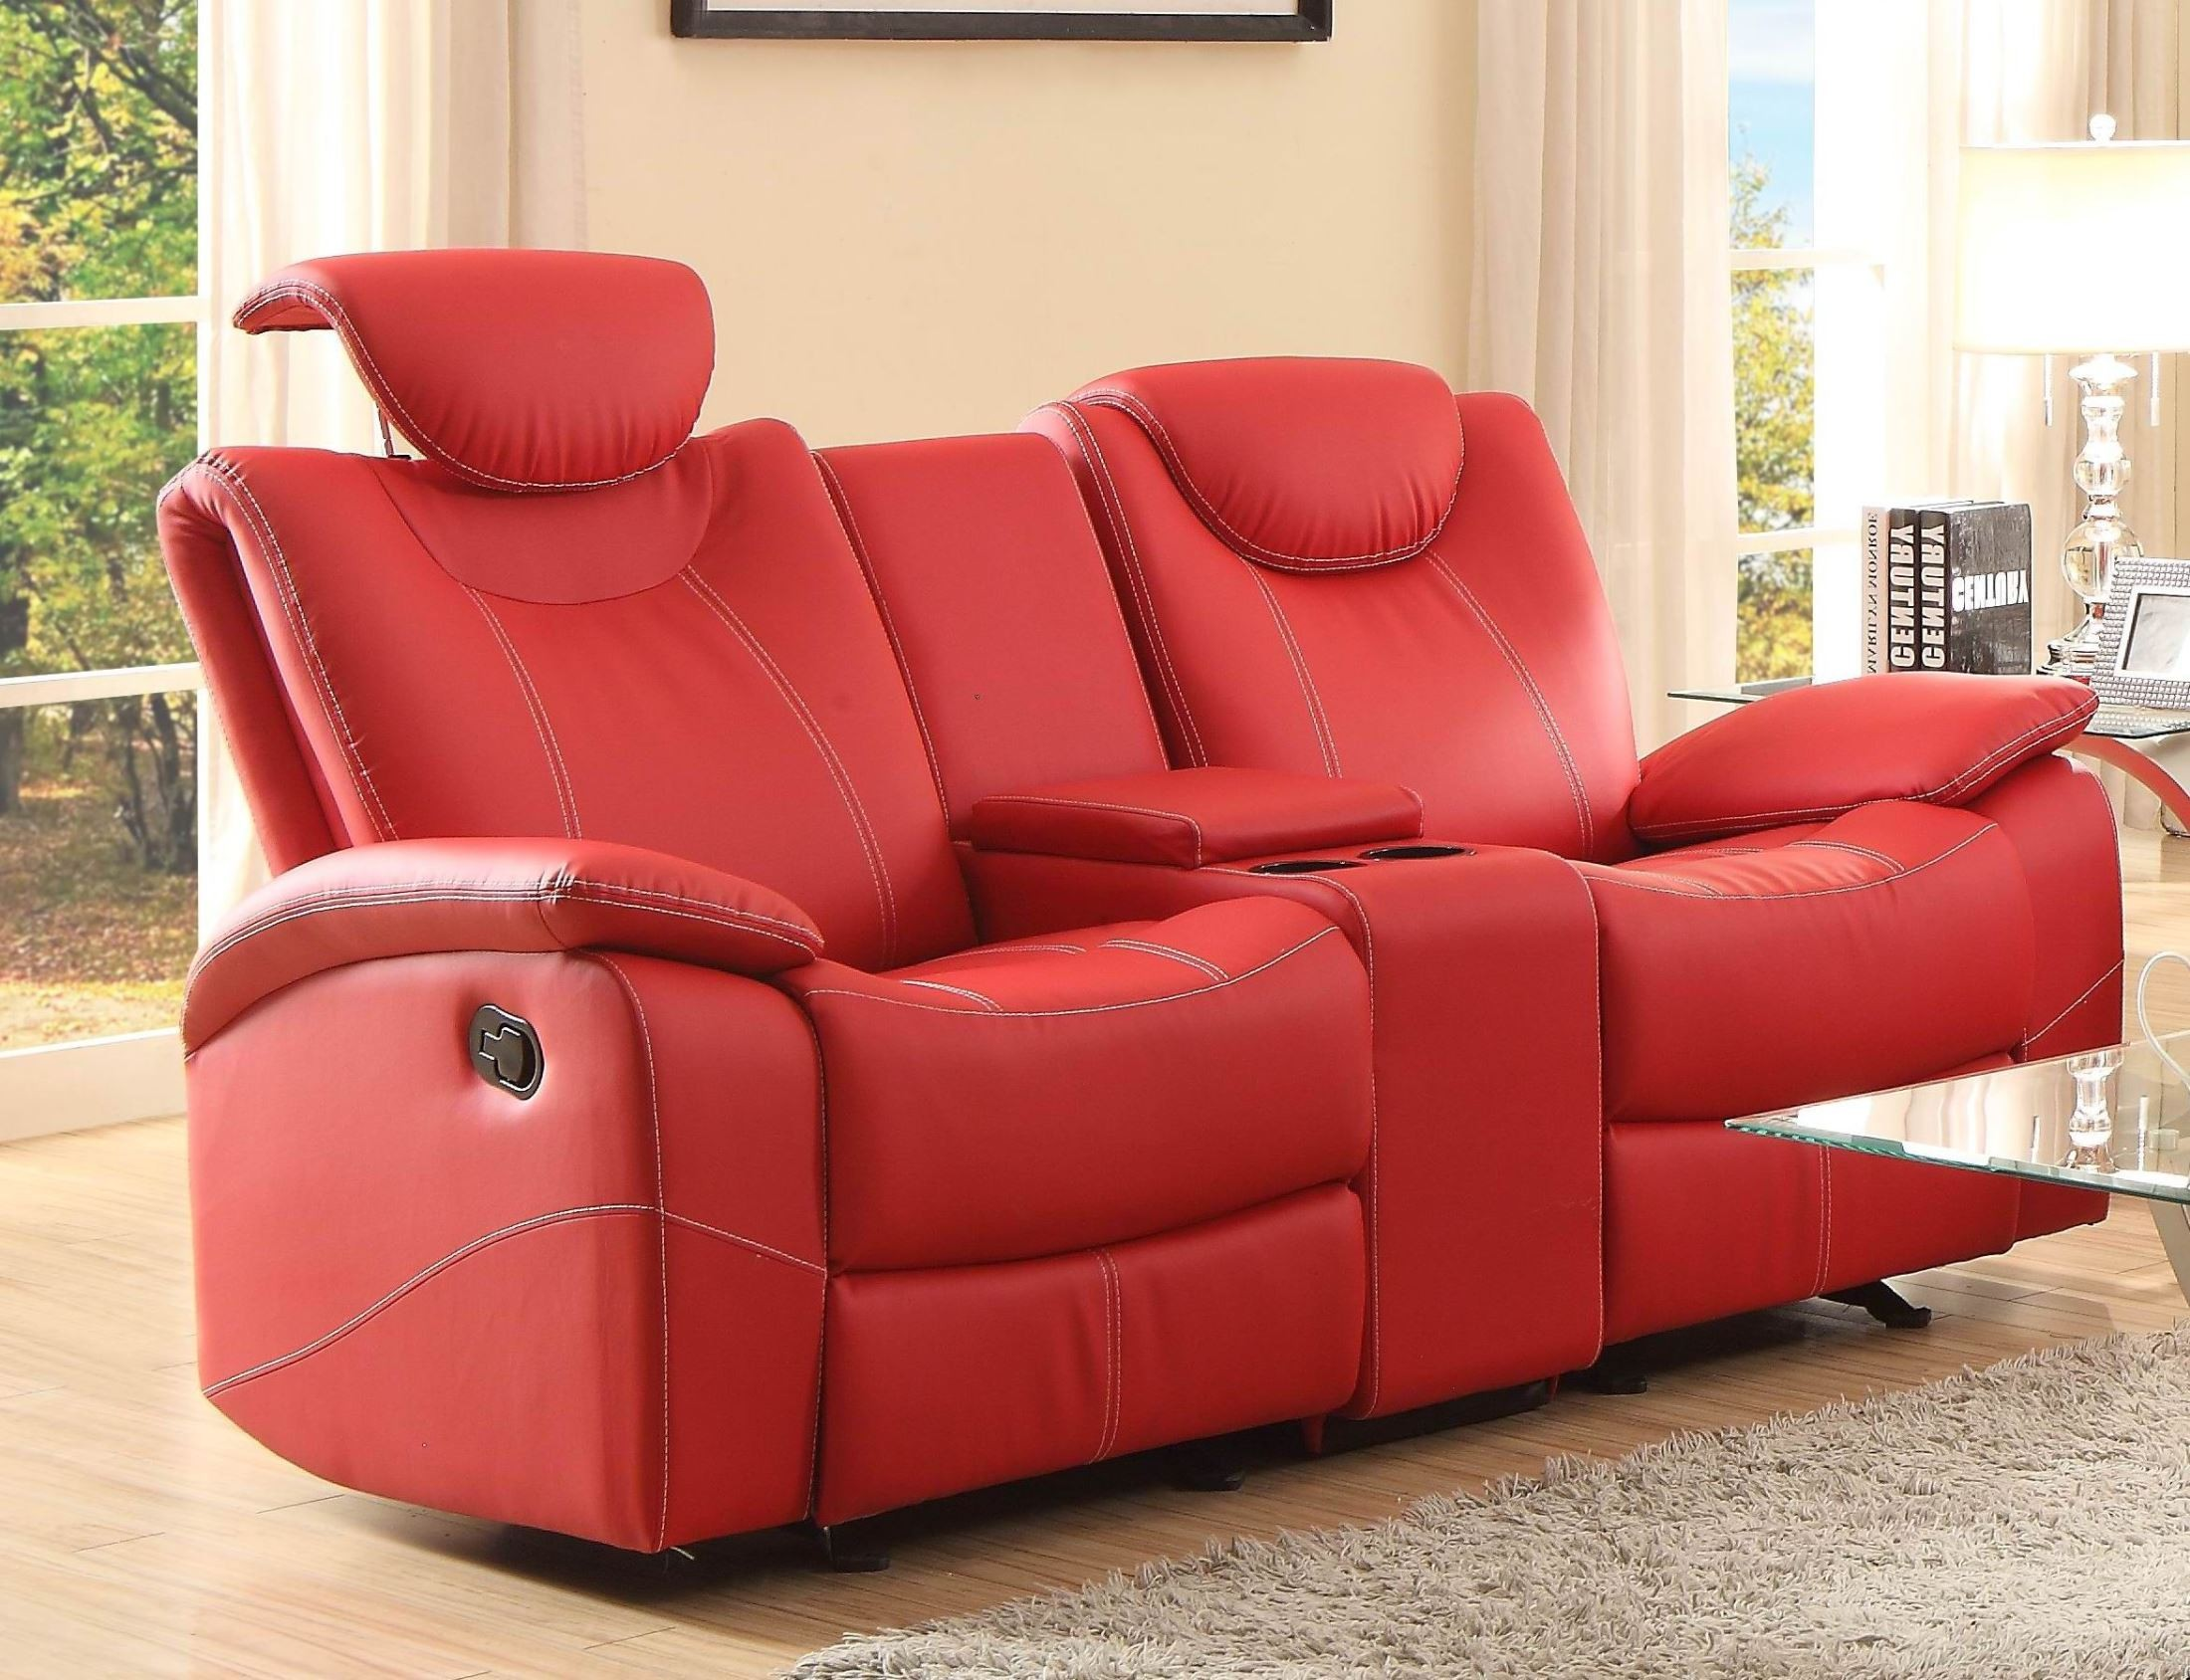 Talbot Red Double Glider Reclining Loveseat With Console From